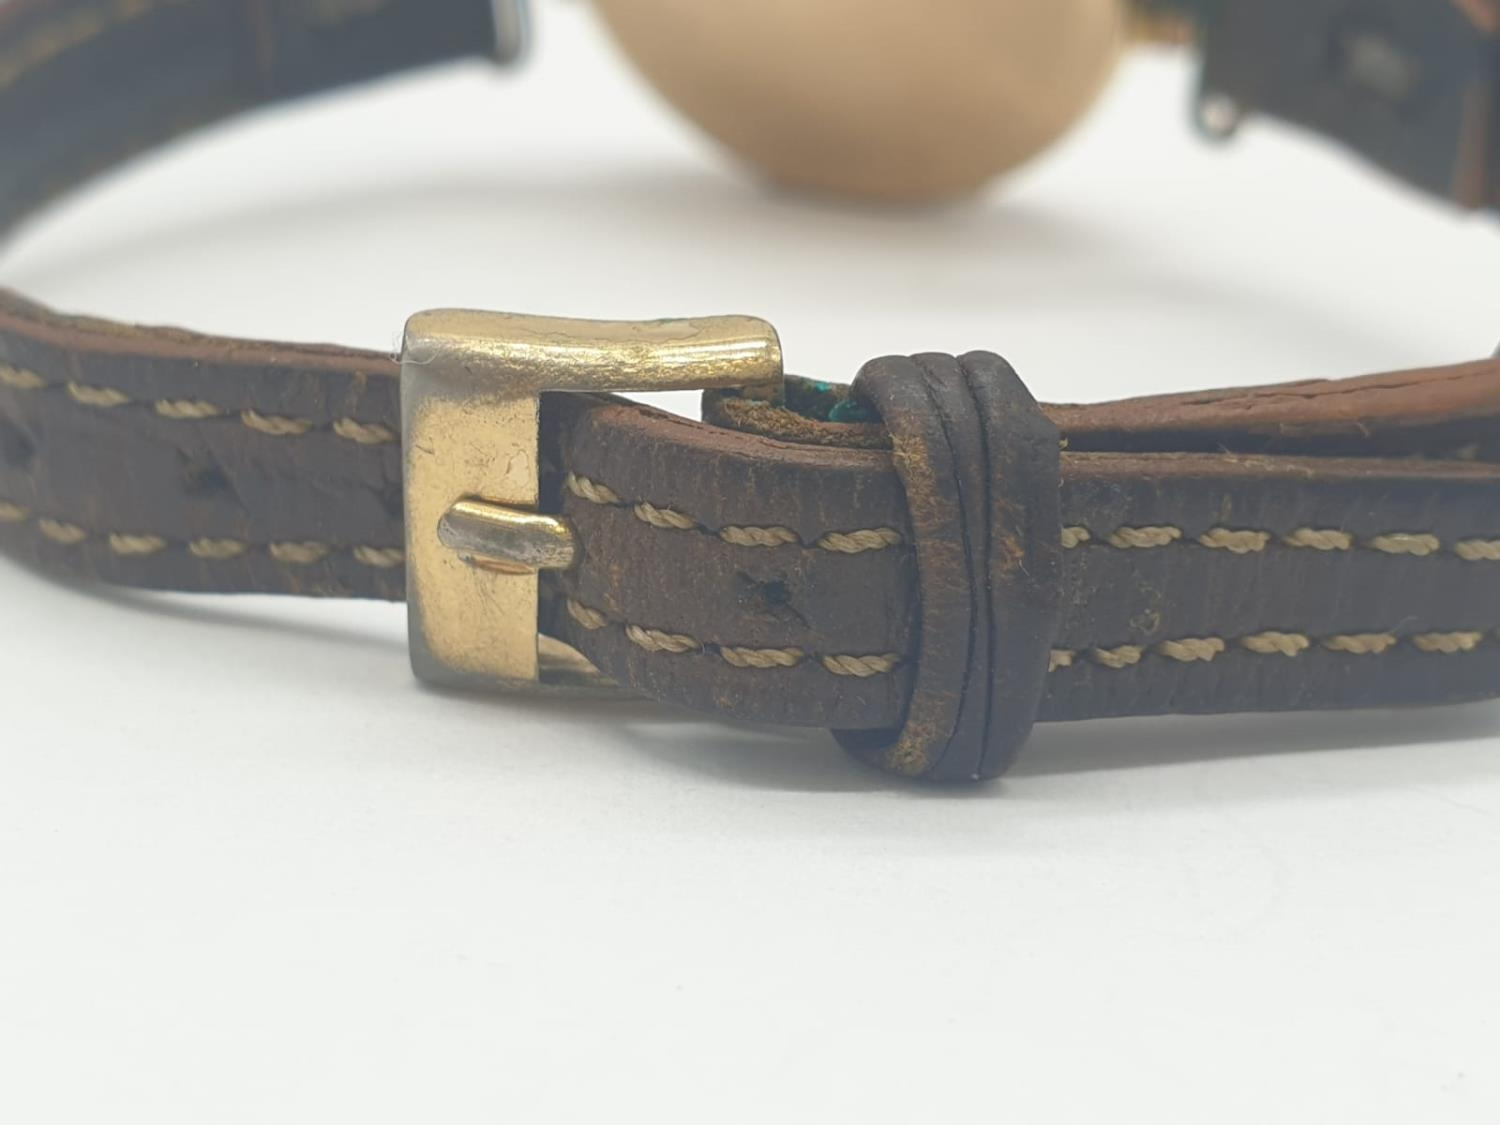 Vintage 9ct gold ladies wrist watch with leather strap - Image 5 of 9